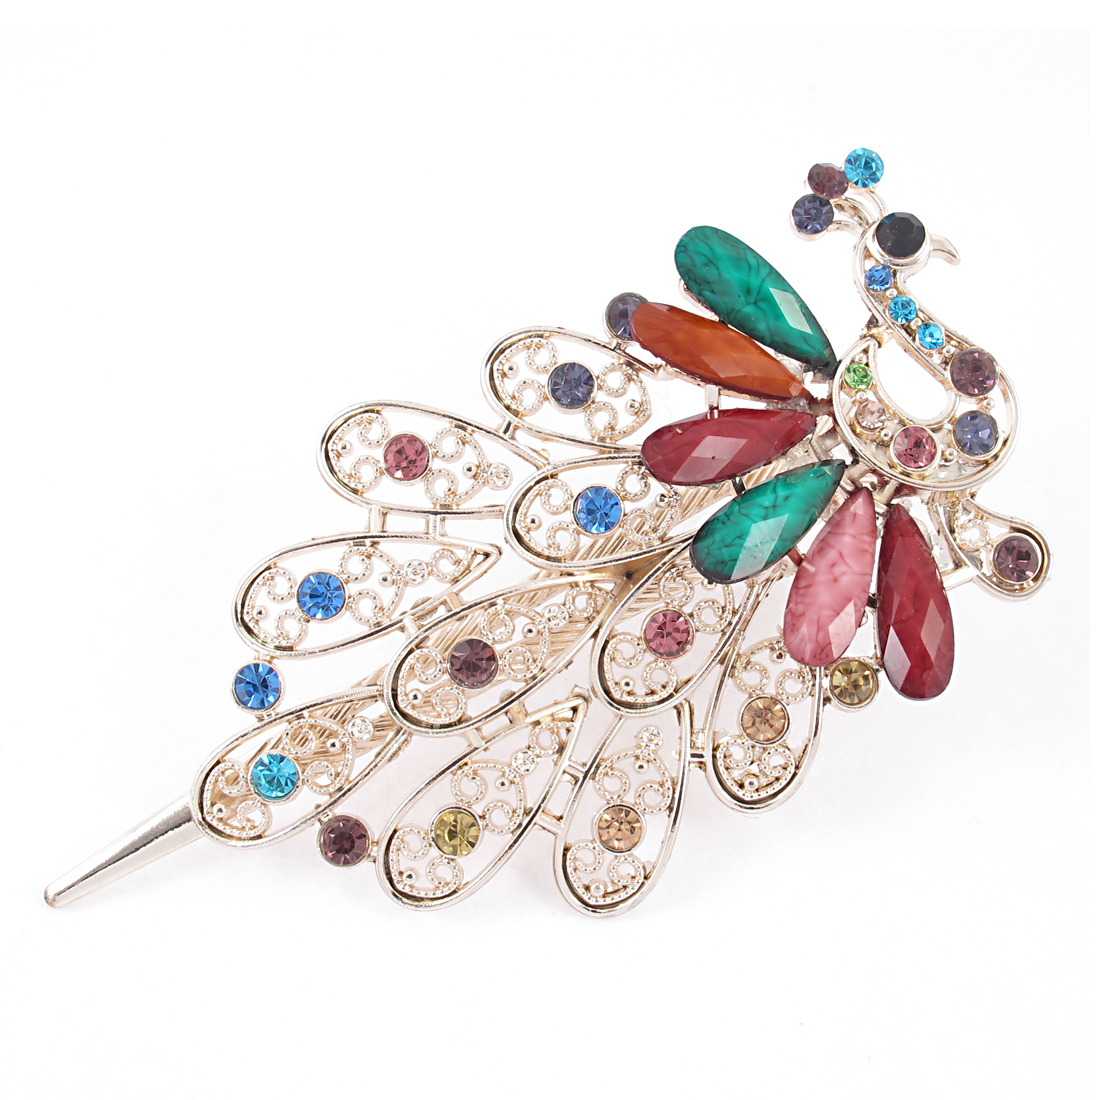 Woman Faux Rhinestone Gemstone Decor Peacock Shape Barrette Hairclip